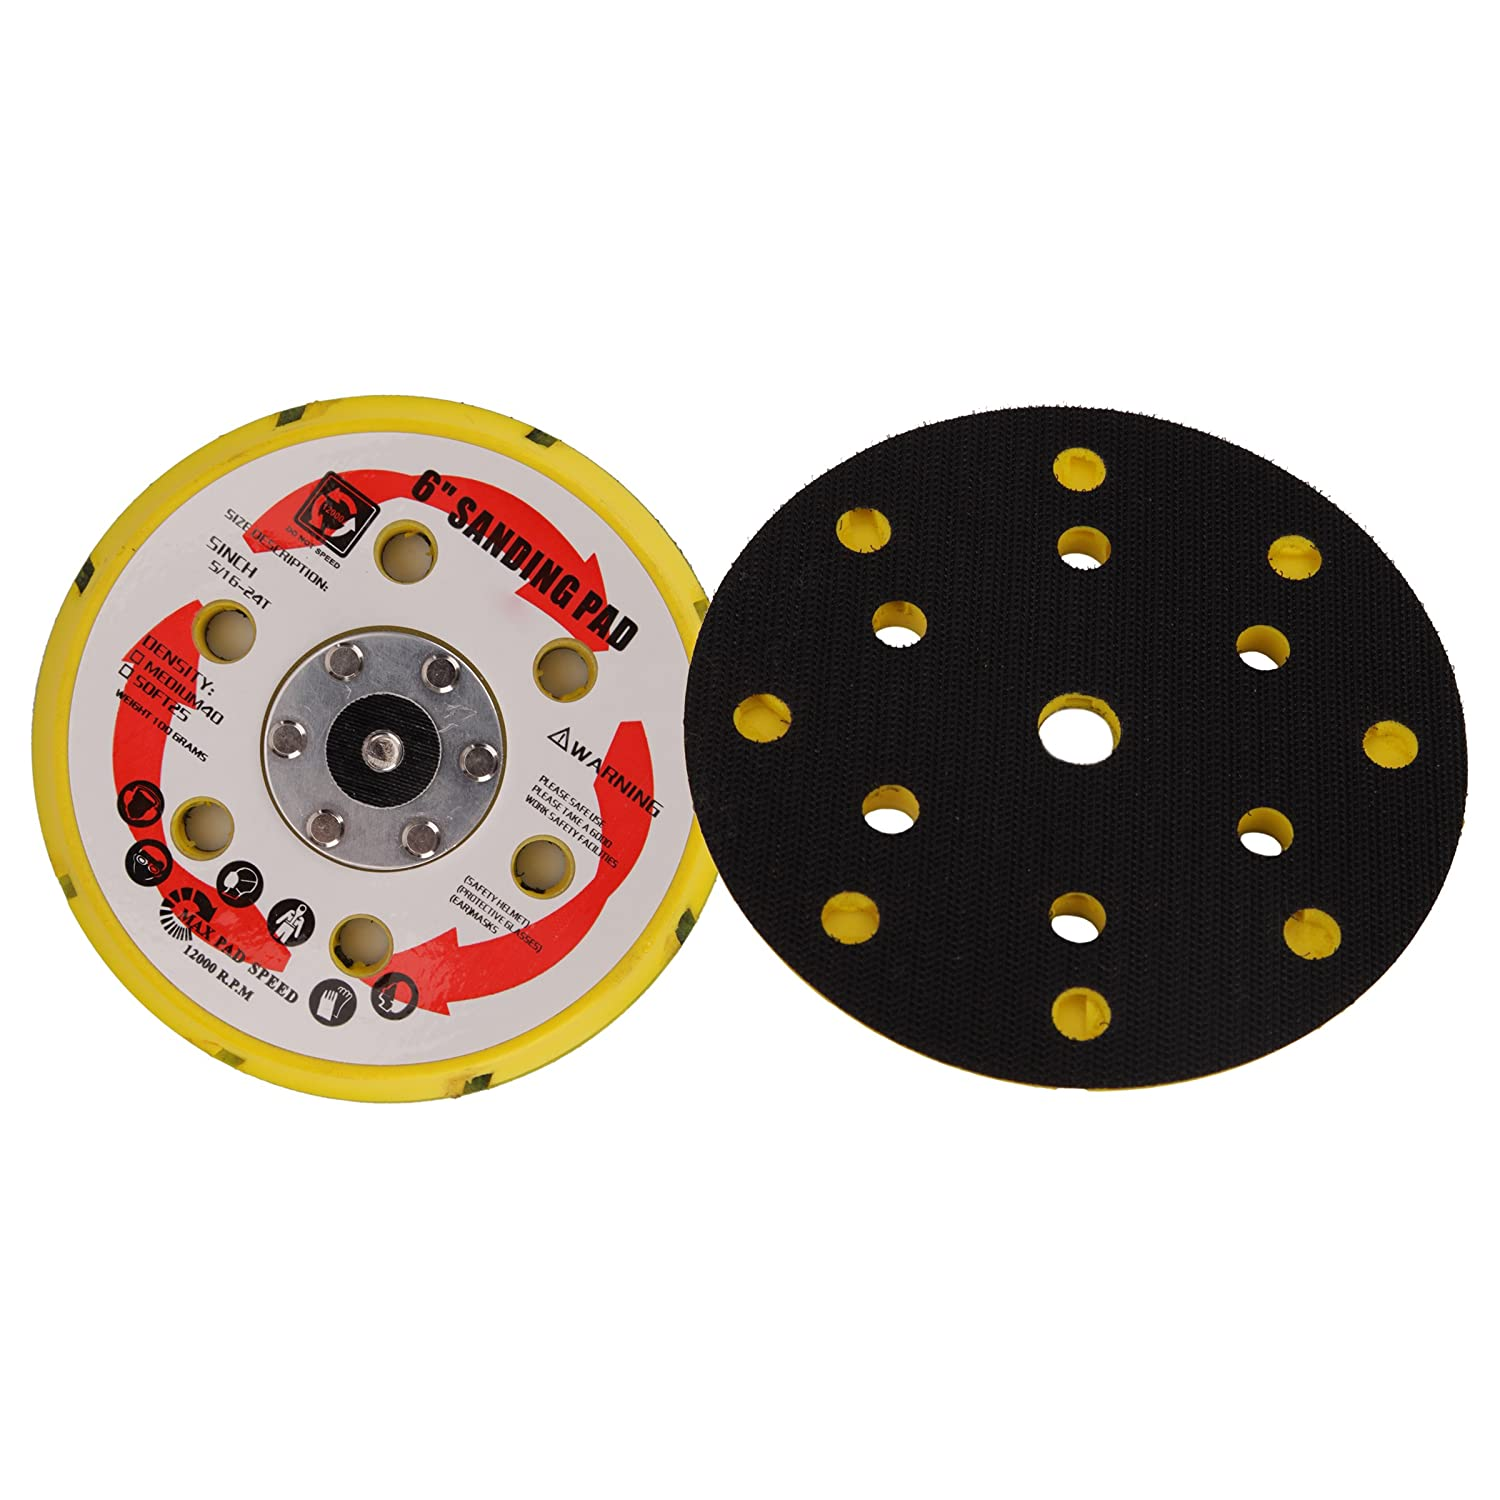 Valianto Color Black 6-inch Hook&Loop Backing Pads Polishing Disc with 15 Hole,Pack of 5PCS